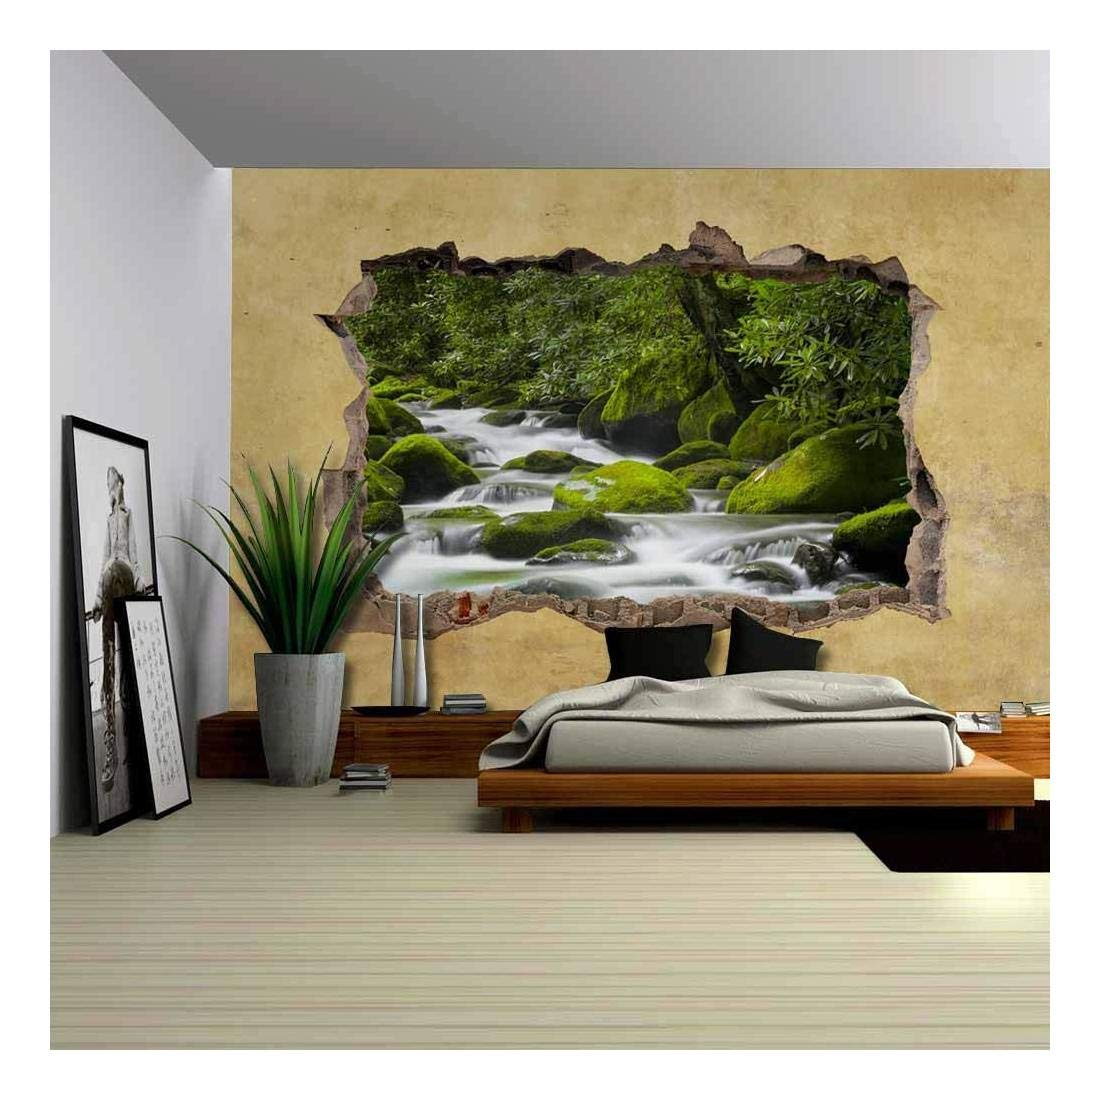 wall26 Cascading Spring in Tropical Forest Viewed through a Broken Wall - Large Wall Mural, Removable Peel and Stick Wallpaper, Home Decor - 66x96 inches